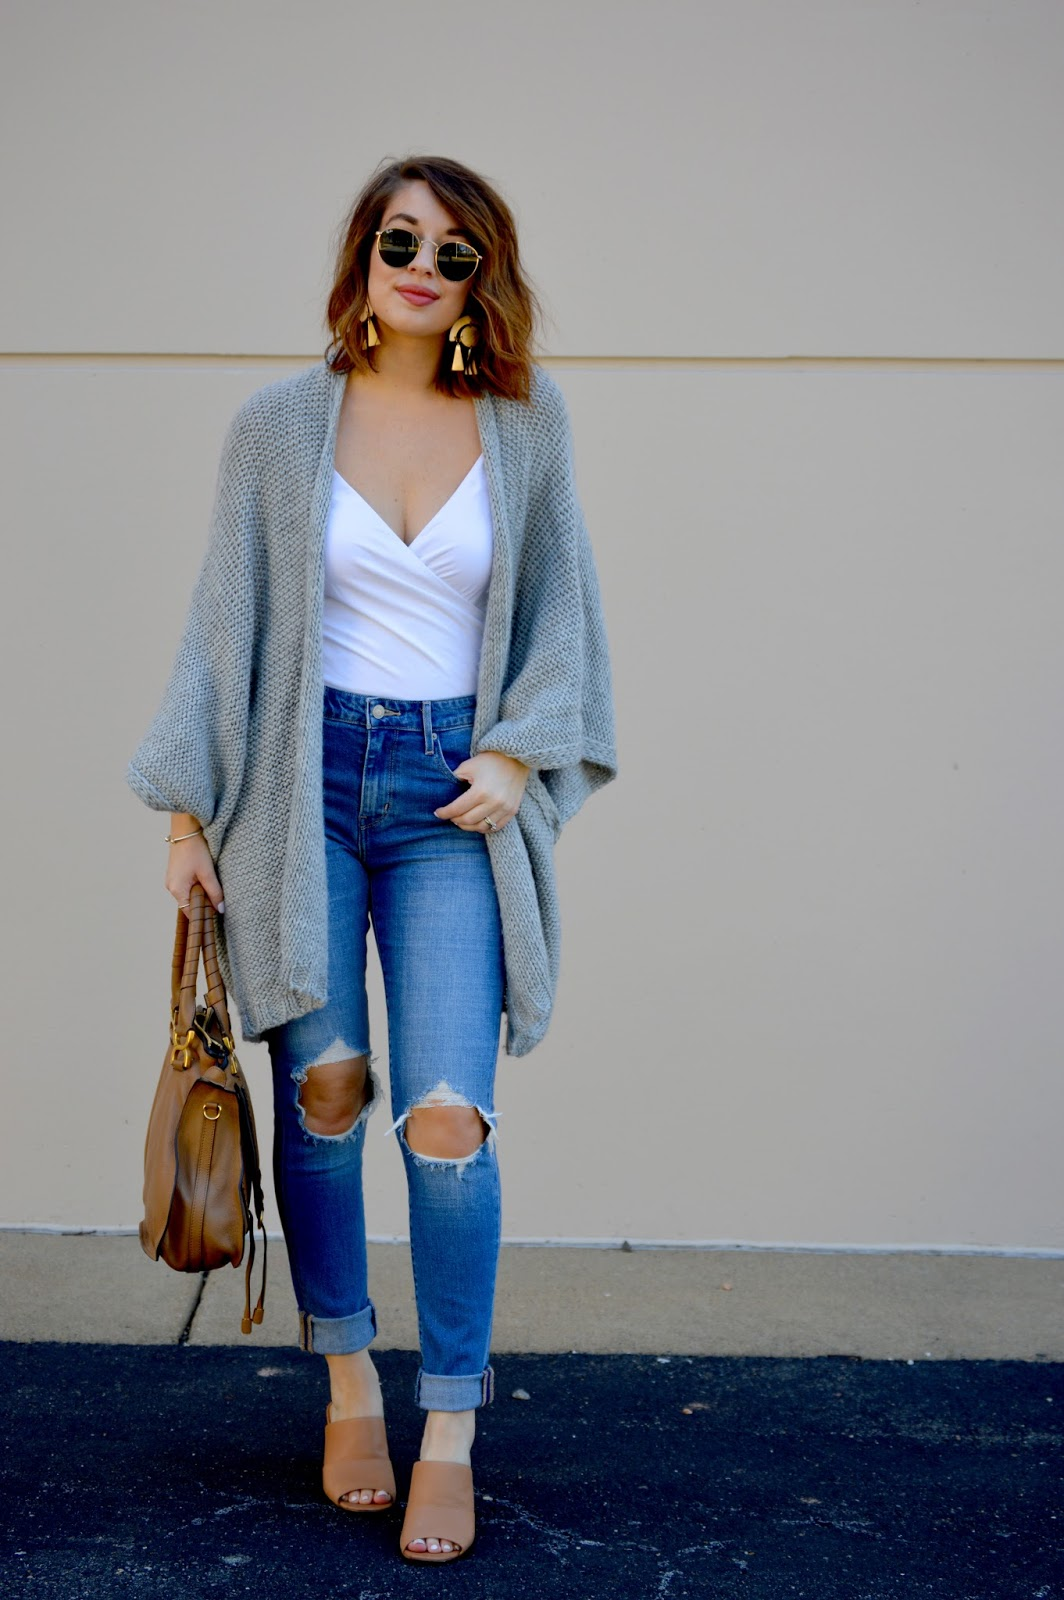 01ca4ef660 Poncho: Aerie (old, similar here), Bodysuit: J. Crew, Jeans: Levi's, Bag:  Chloe, Earrings: Sole Society, Mules: Sole Society, Sunnies: Ray-Ban